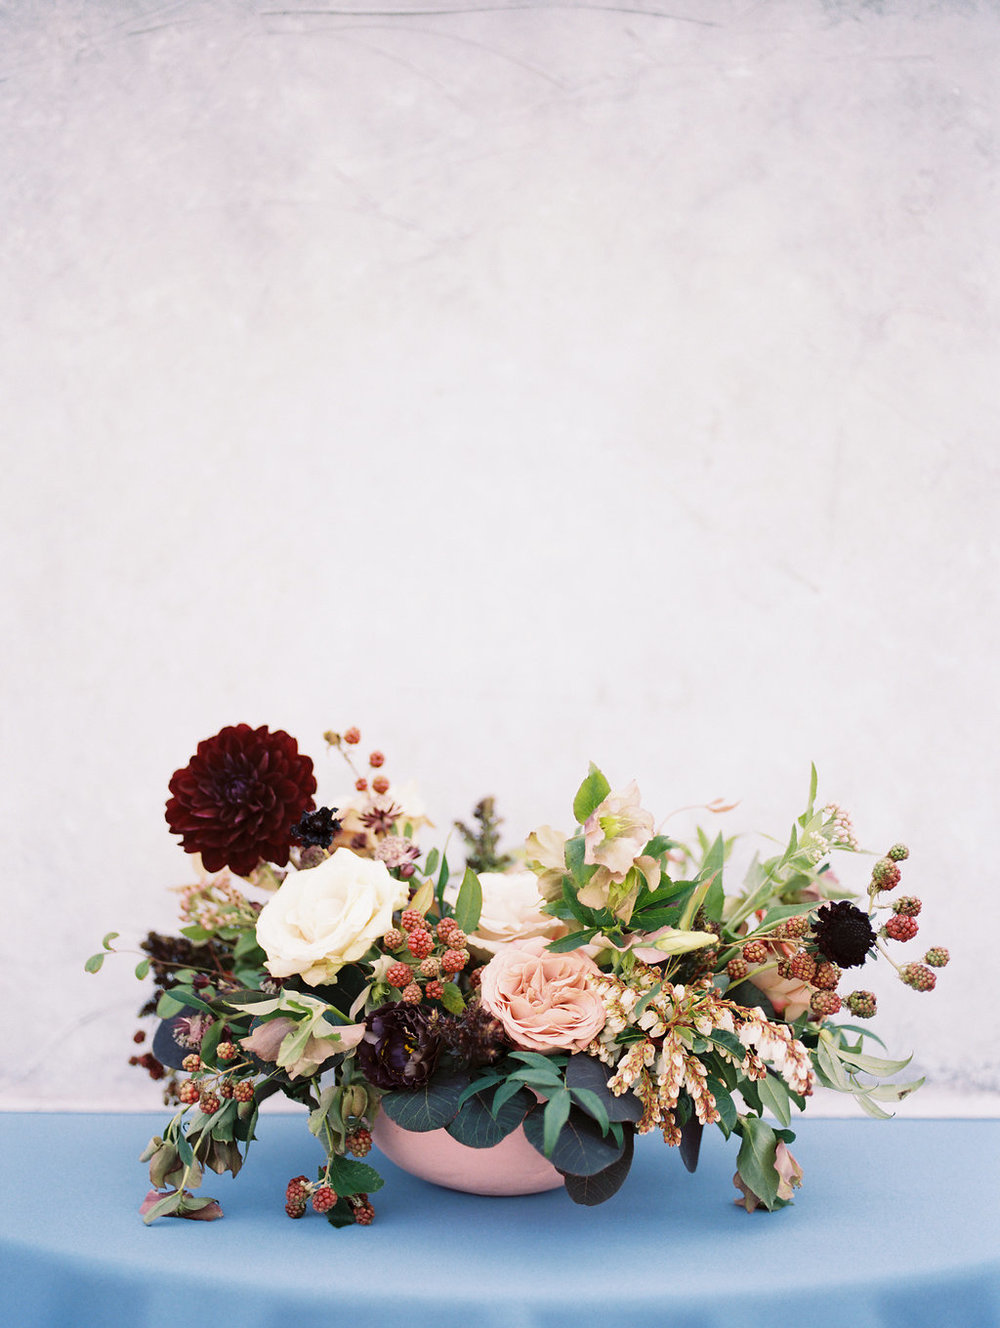 Garden Inspired Wedding Centrepiece - Wedding Florist in Dallas